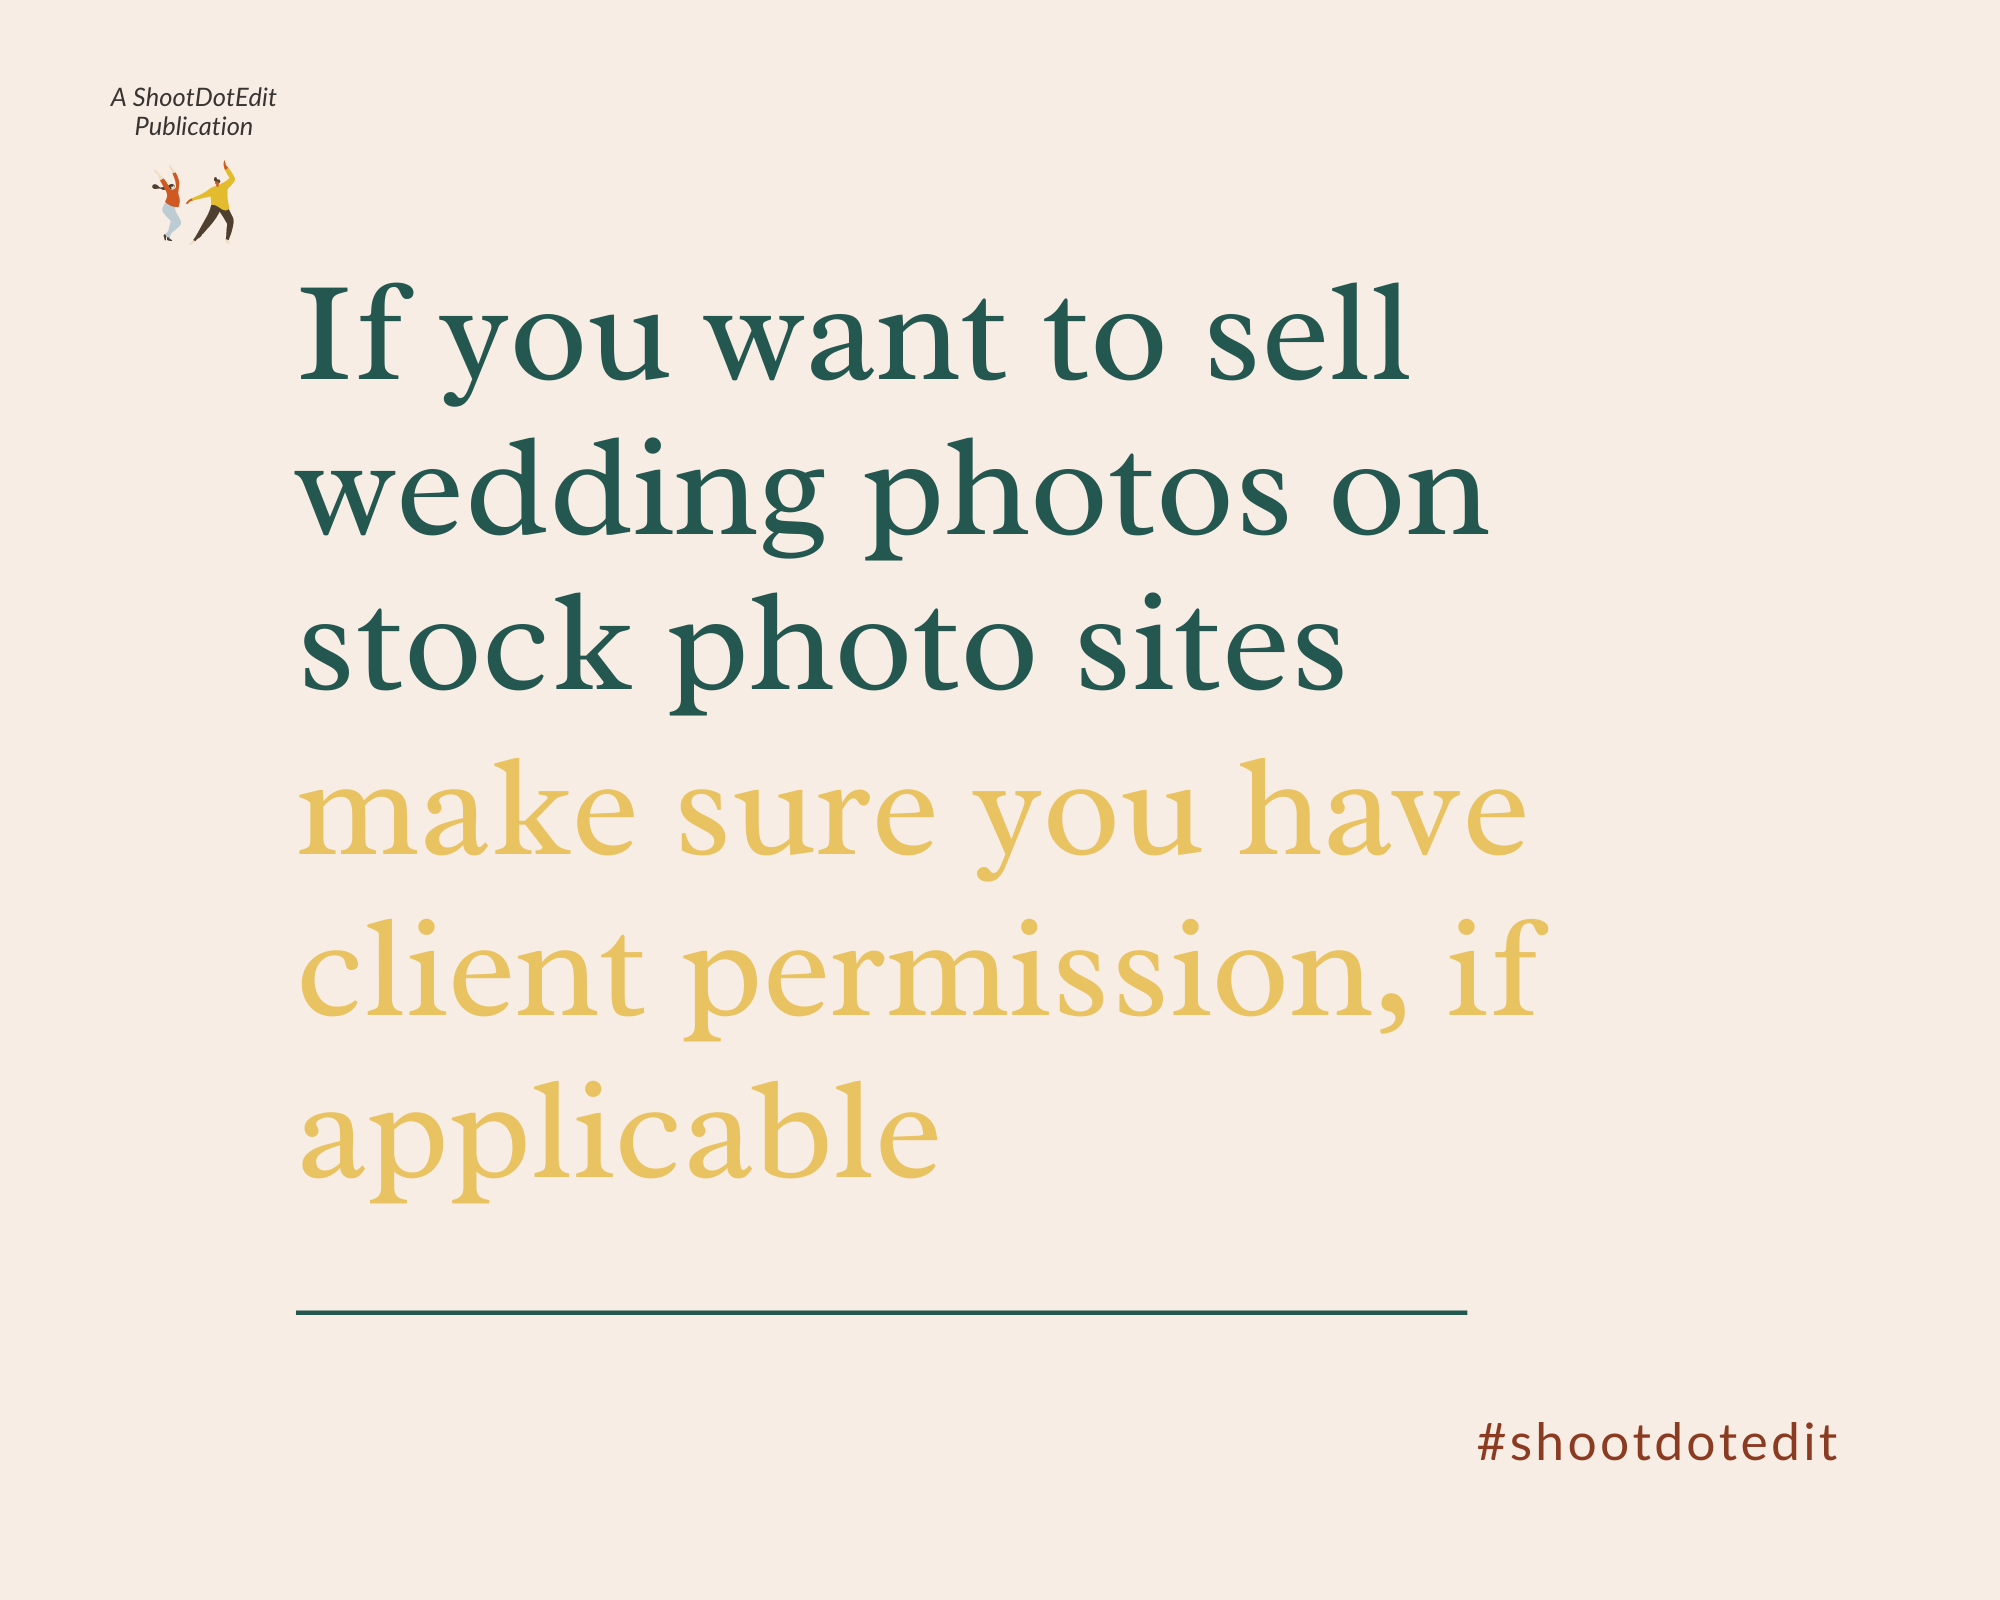 Infographic stating if you want to sell wedding photos on stock photo sites make sure you have client permission if applicable